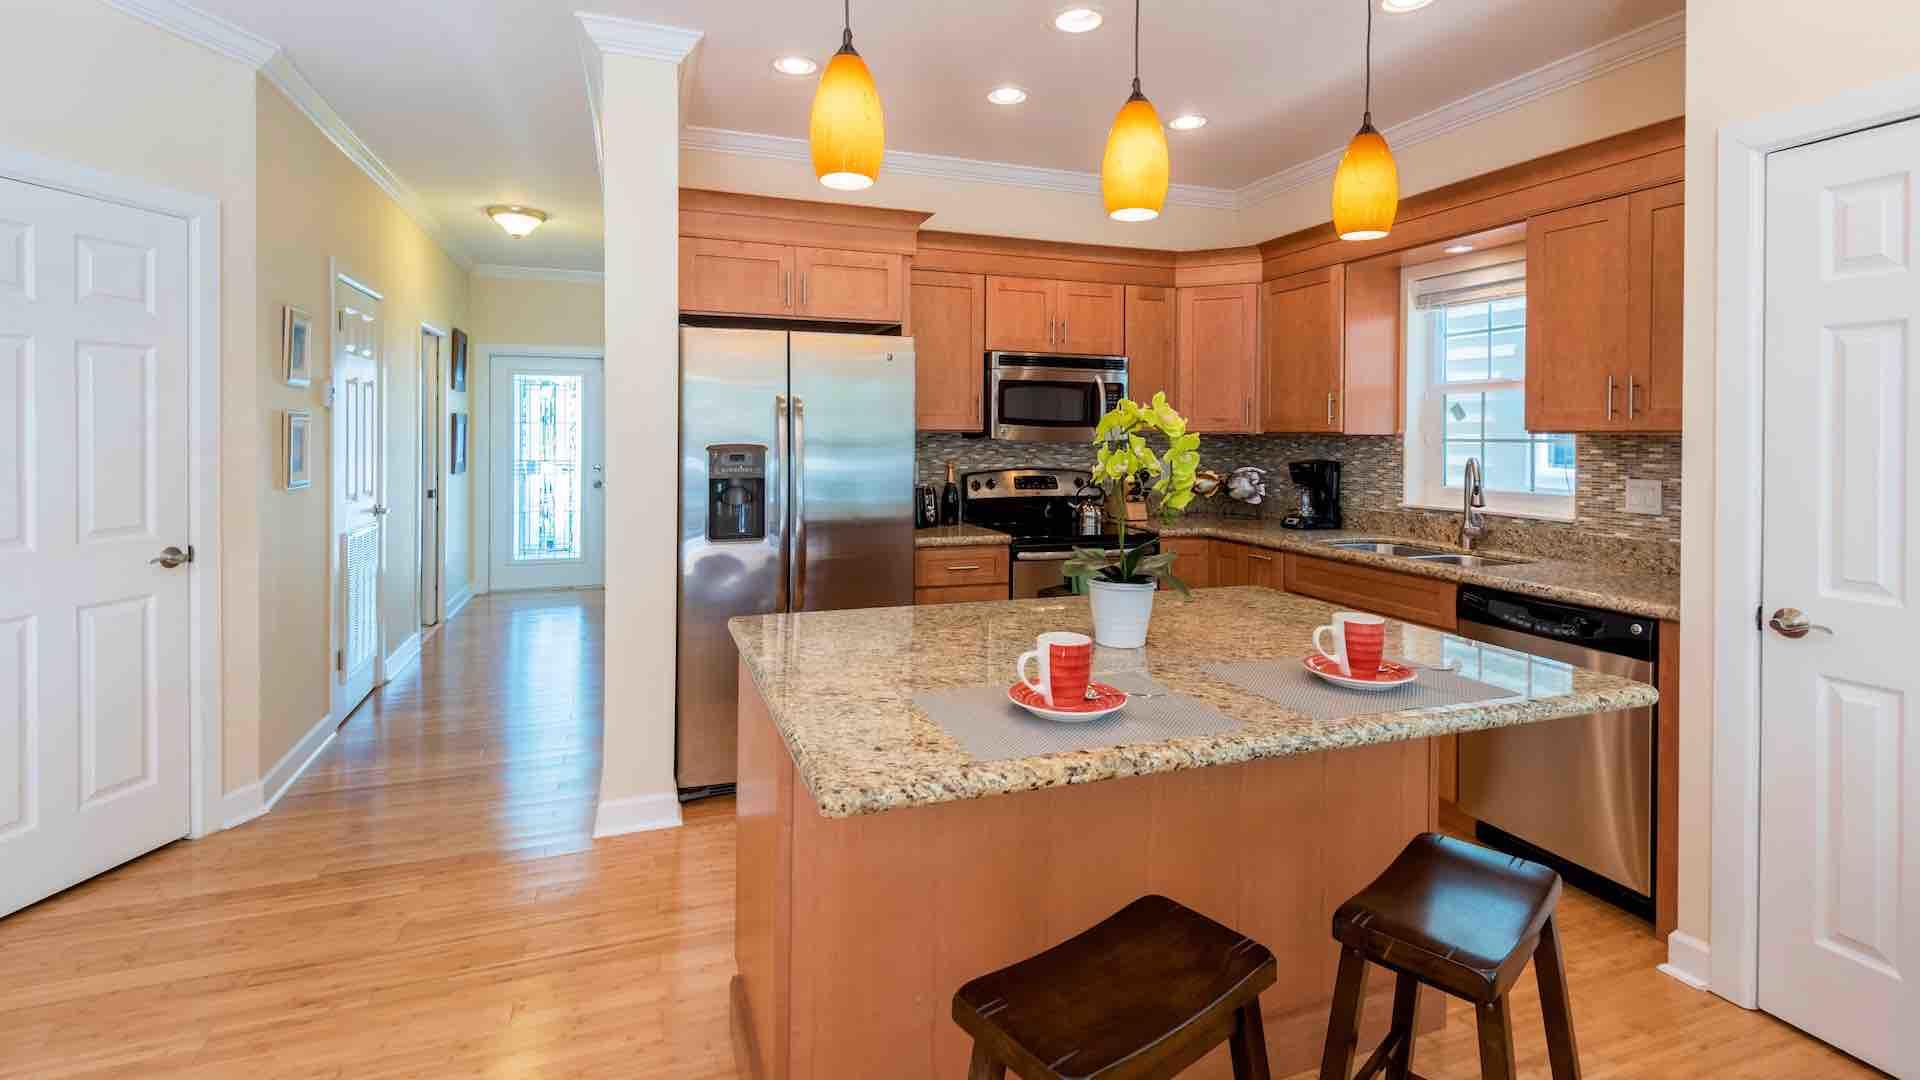 The kitchen is brand new, with stainless steel appliances & luxury tools...